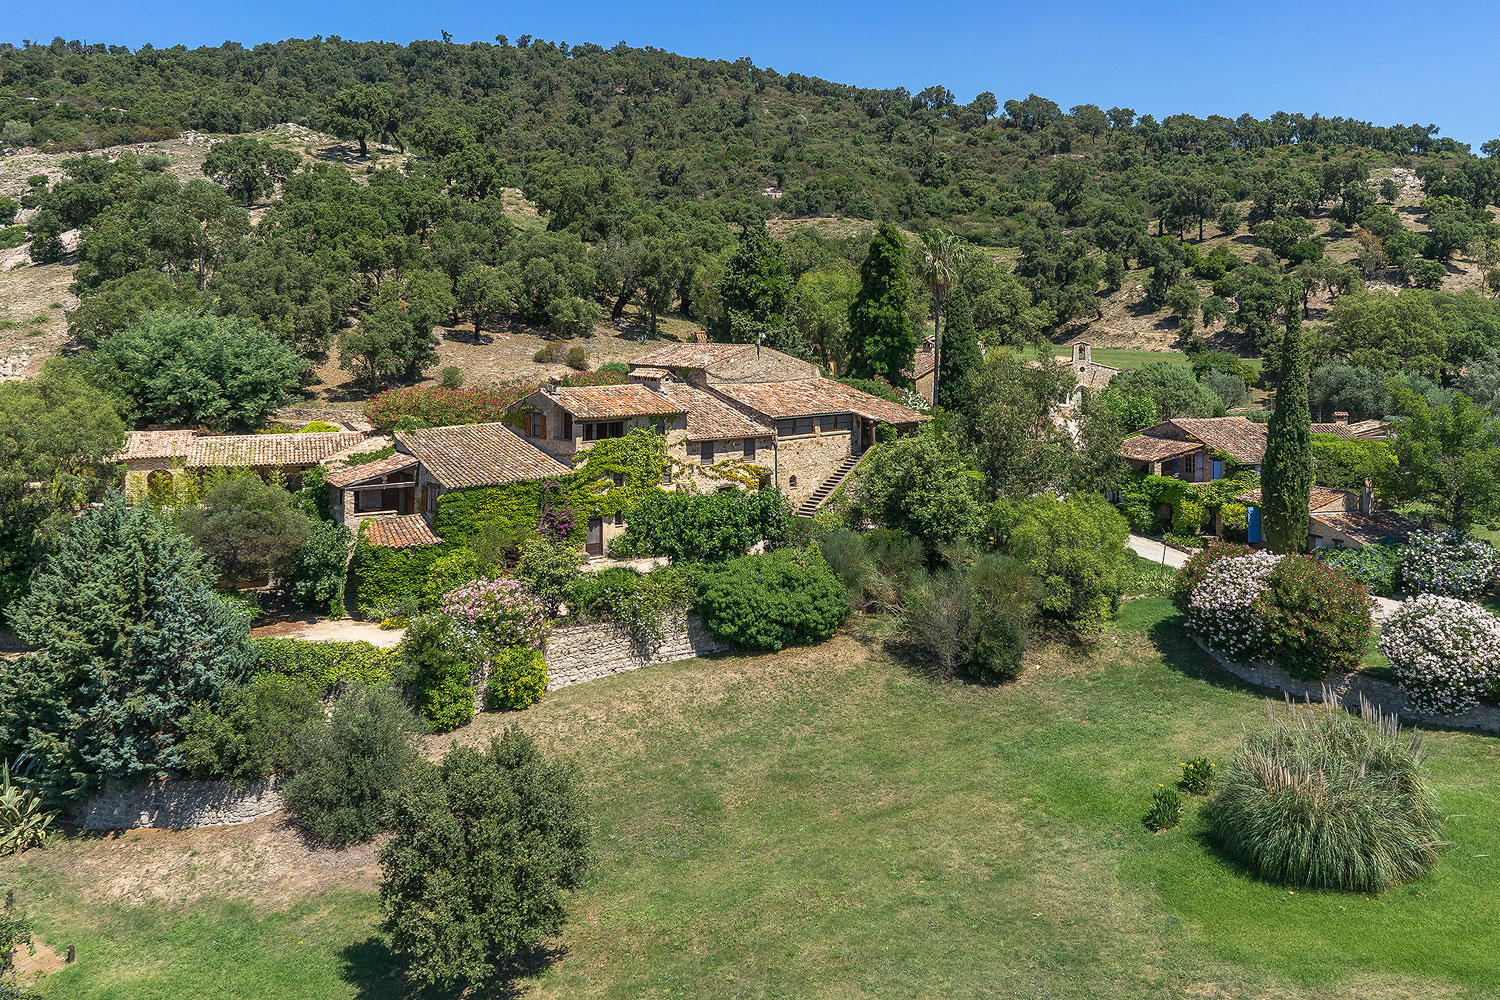 Johnny Depp formed his 37-acre estate in Le Plan-de-la-Tour from an authentic Provençal village dating back to the late 18th century. Depp personally supervised the complete restoration of each building and upgraded each structure for luxurious 21st-century living.